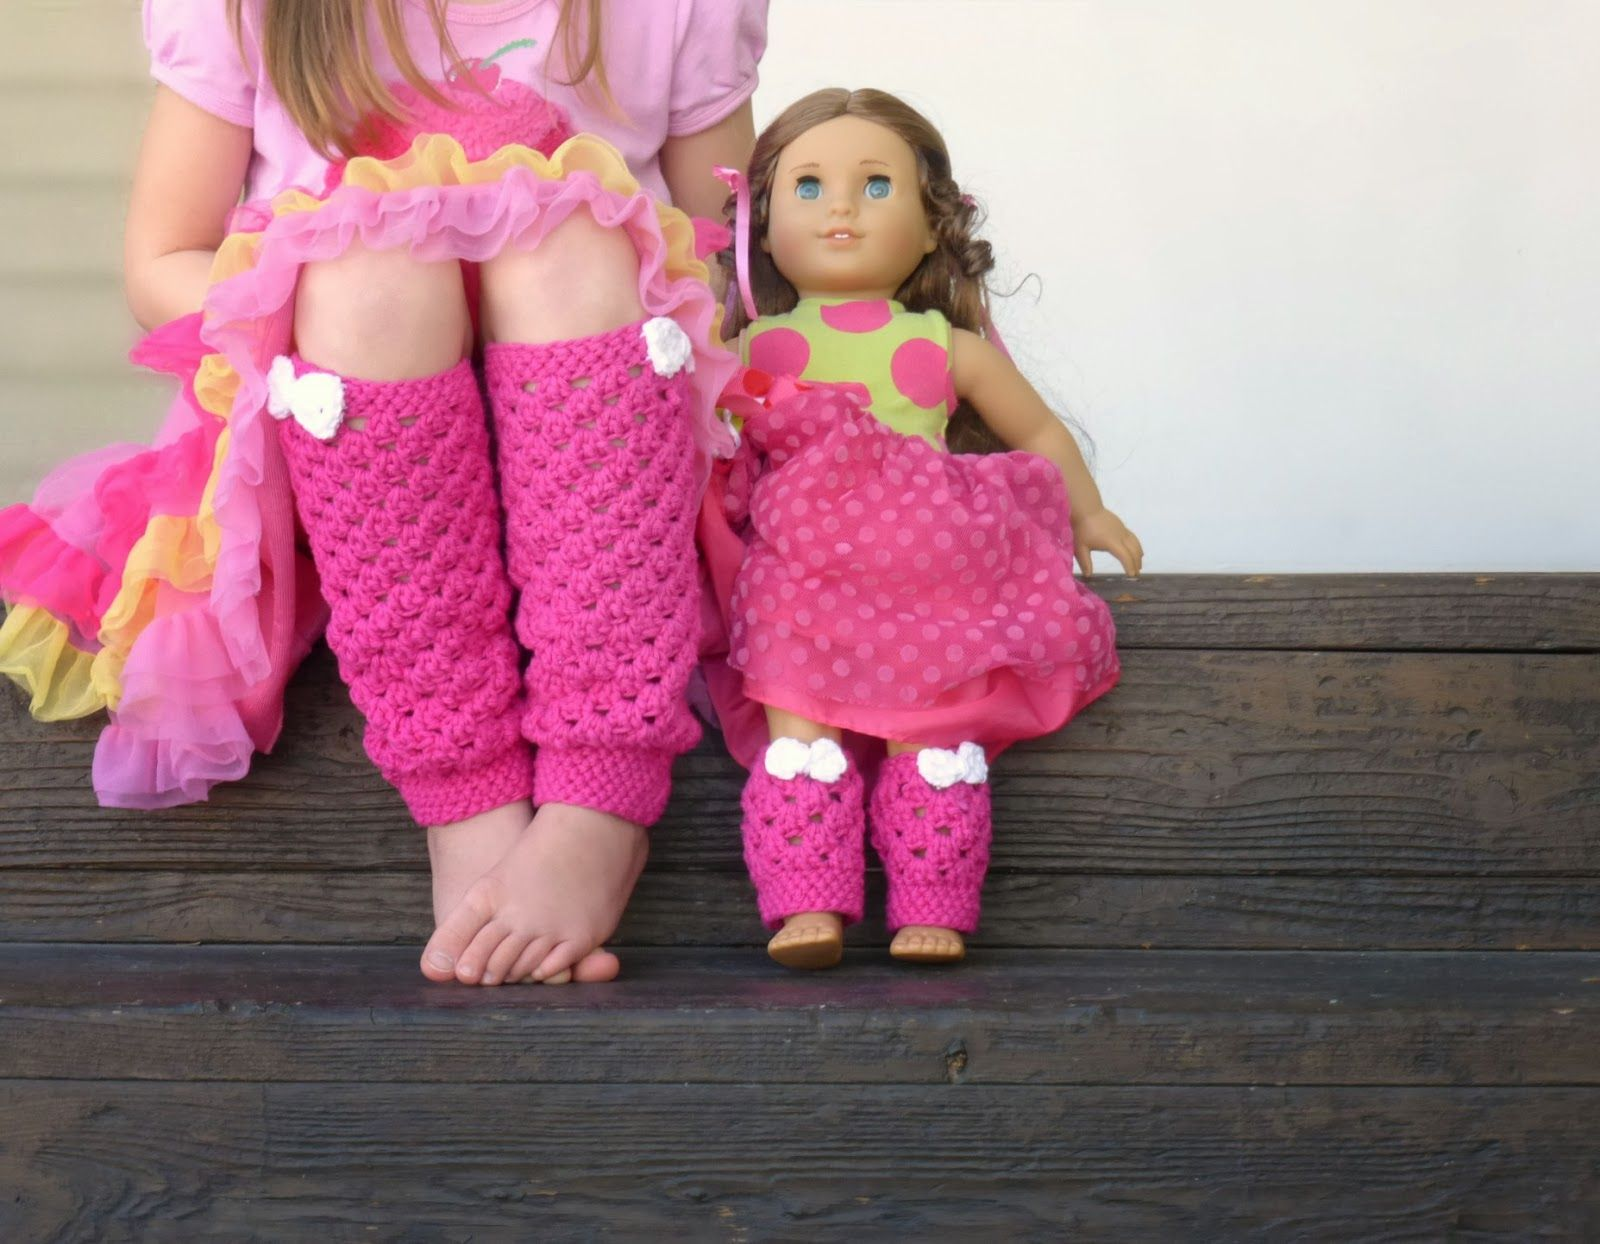 I want to make these matching doll and child warmers for my niece free crochet leg warmers pattern for little girls and their dolls too just made these yesterday they turned out so adorable bankloansurffo Choice Image